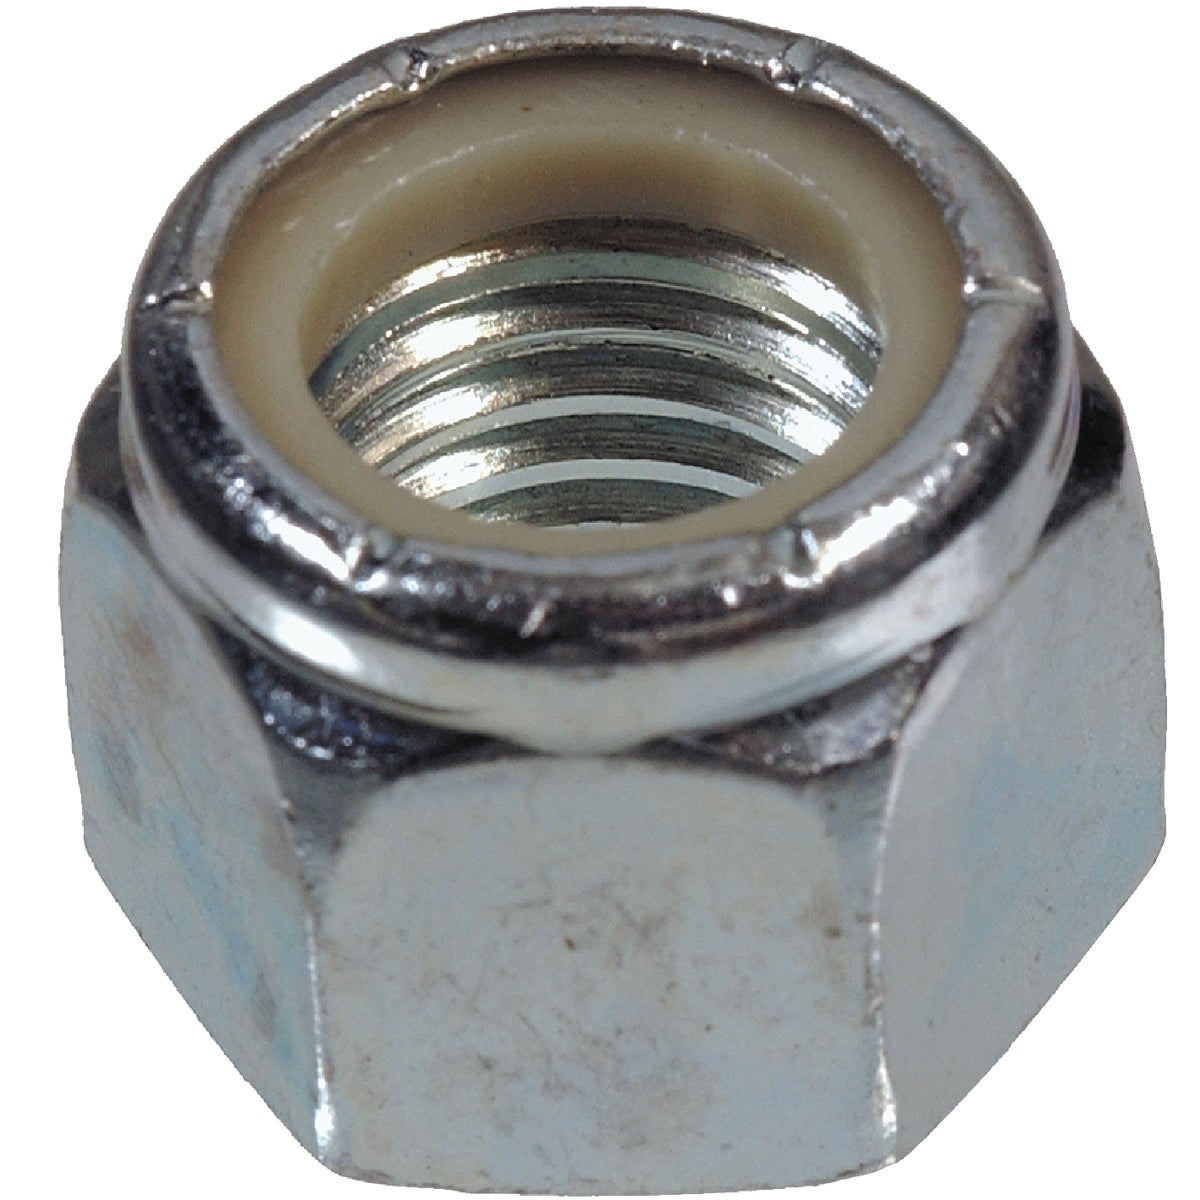 3/4-10 NYLON LOCK NUT - 180168 by Hillman Fastener